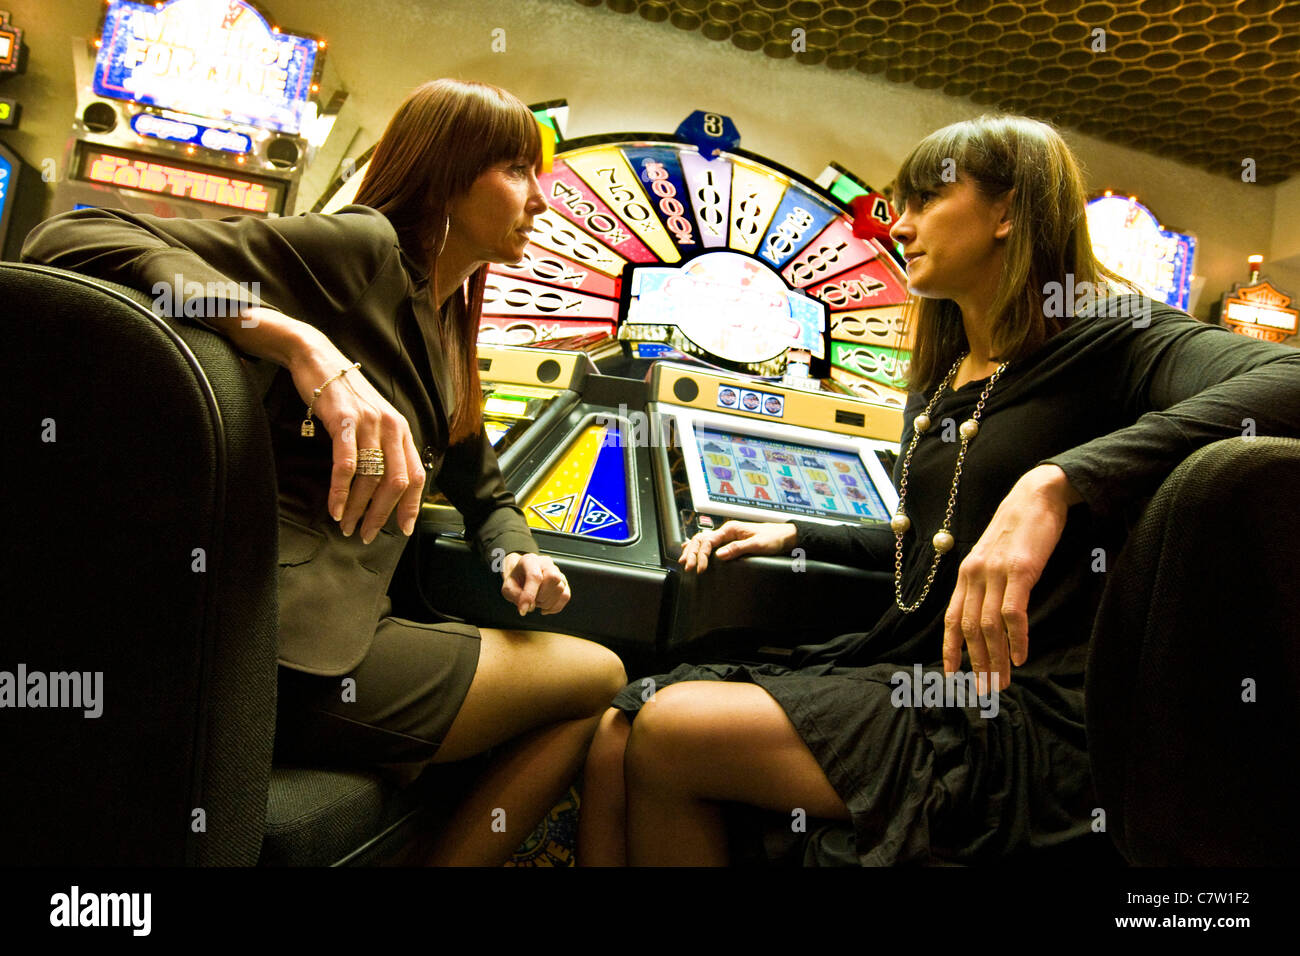 Italy, Val D'Aosta, Saint Vincent, people at slot machine - Stock Image